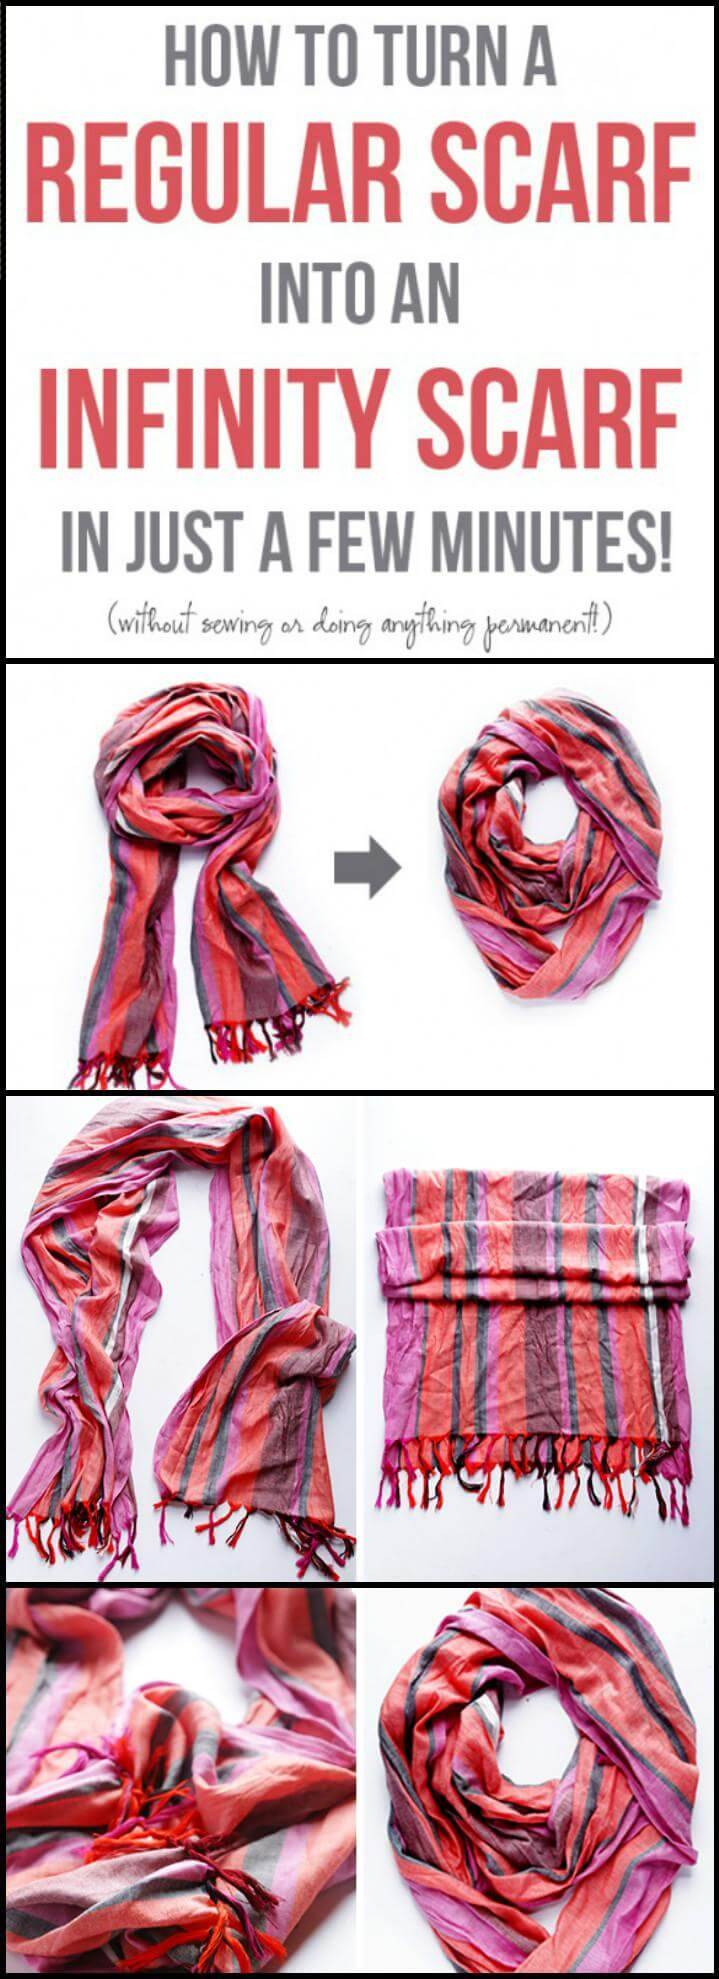 how to convert a regular scarf into an infinity scarf